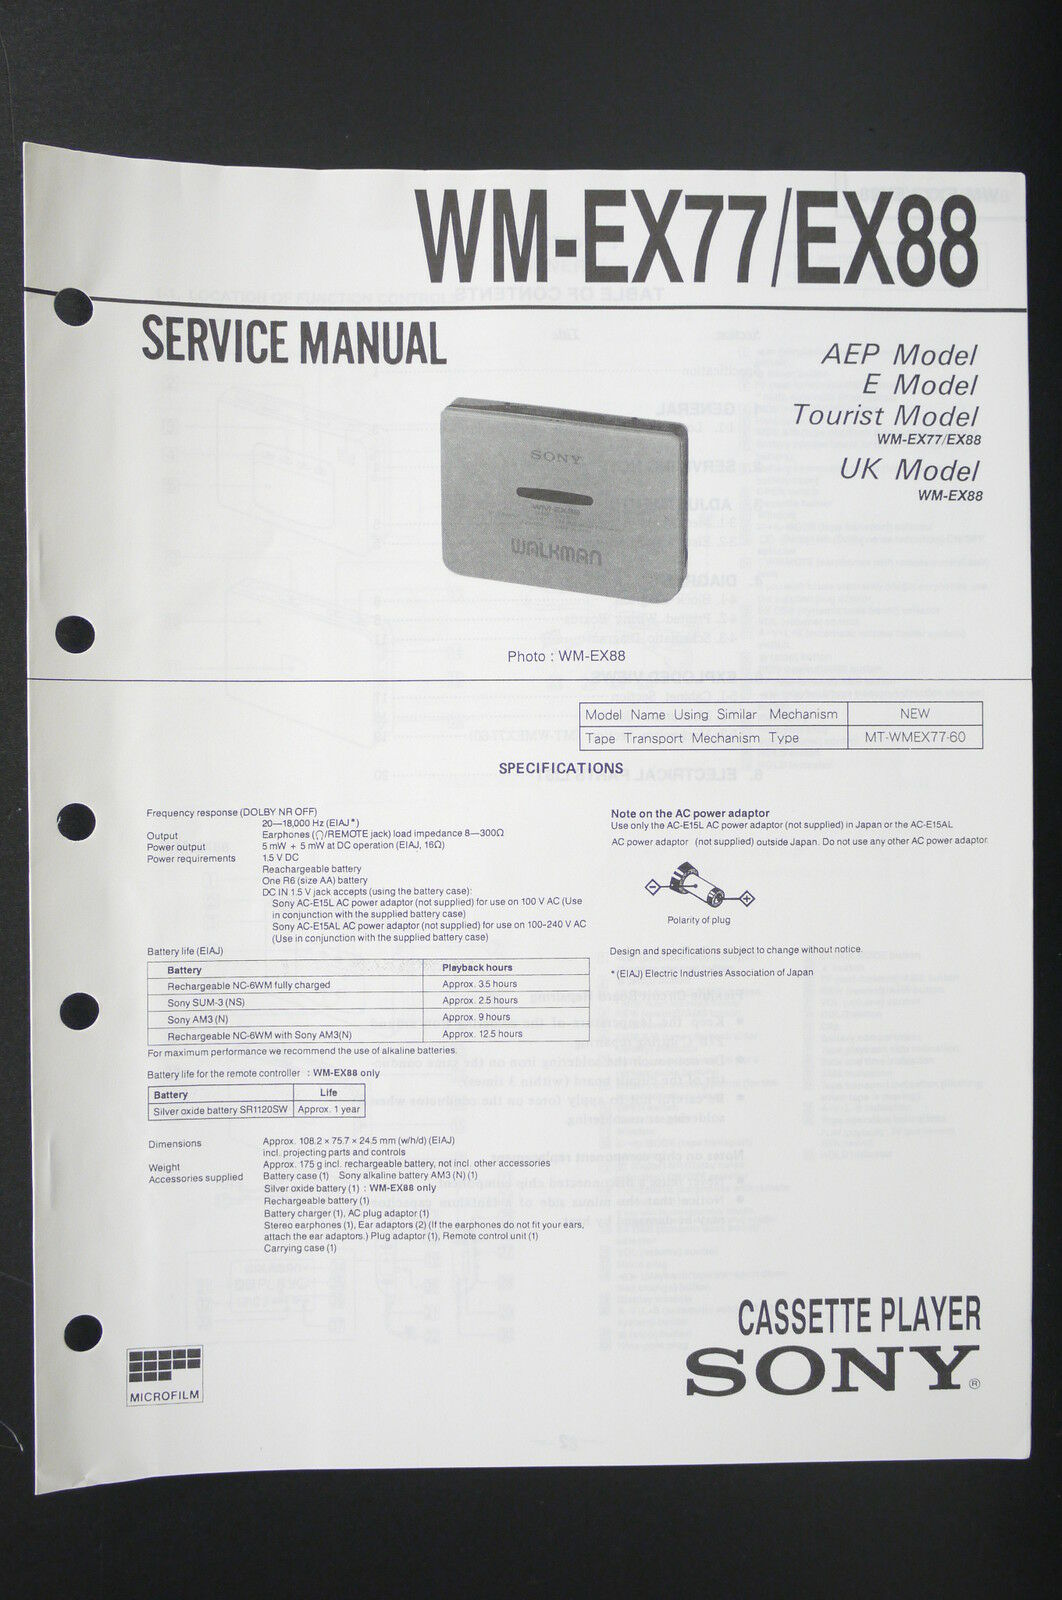 Sony Wm Ex77 Ex88 Walkman Cassette Player Service Manual Wiring Diagram 1 Of 3only 3 Available